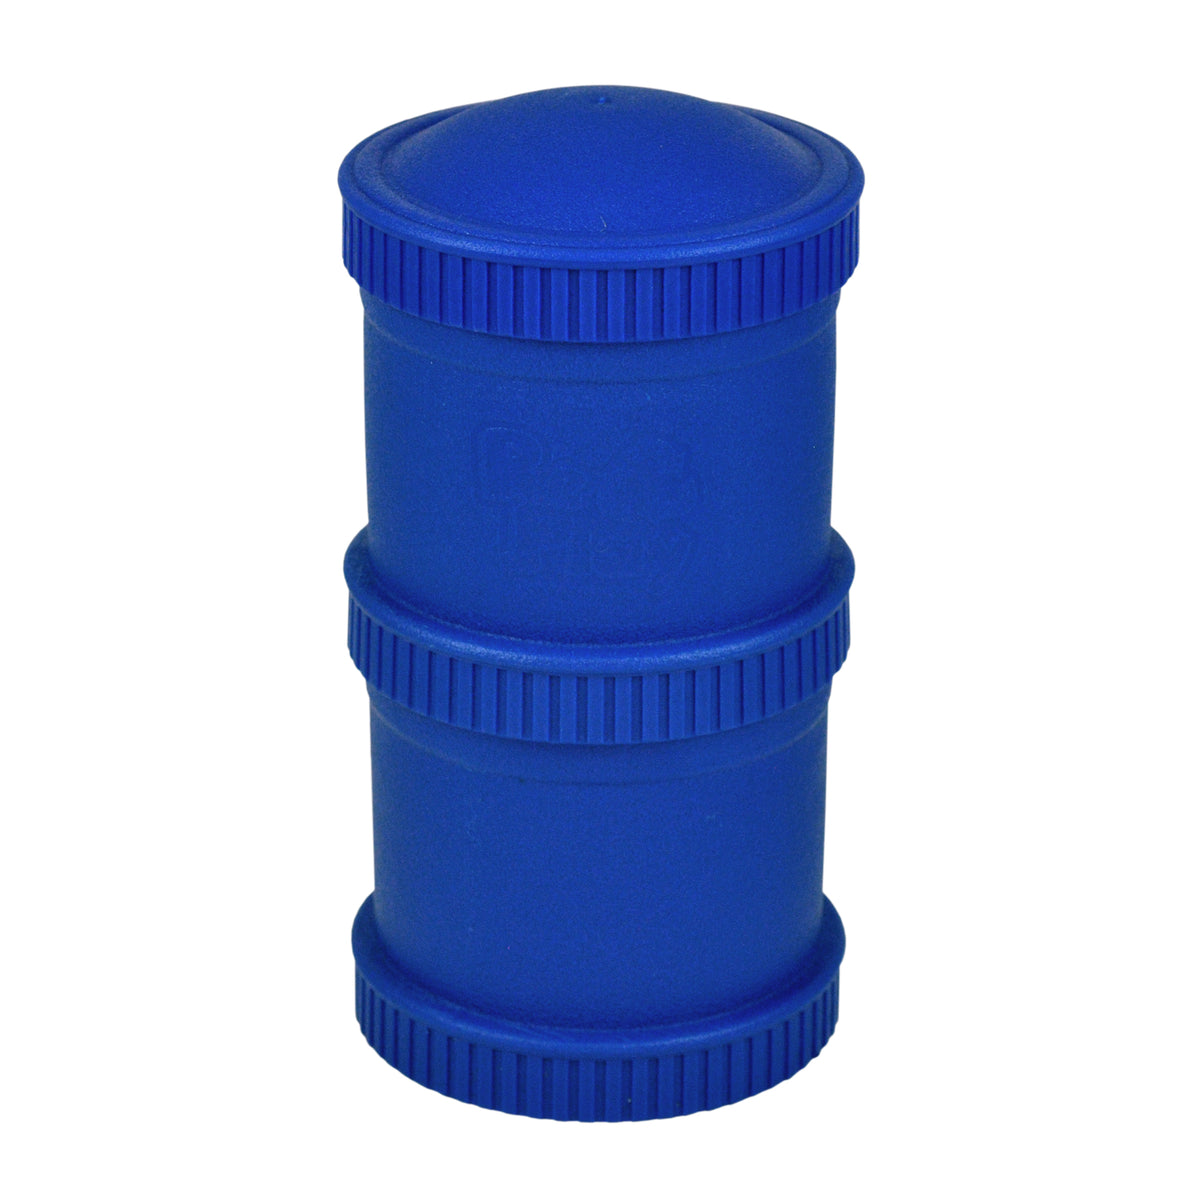 melamine and BPA free NIP eat green organic drinking cup baby from 12 months dishwasher and microwave safe: 2 pieces Blue